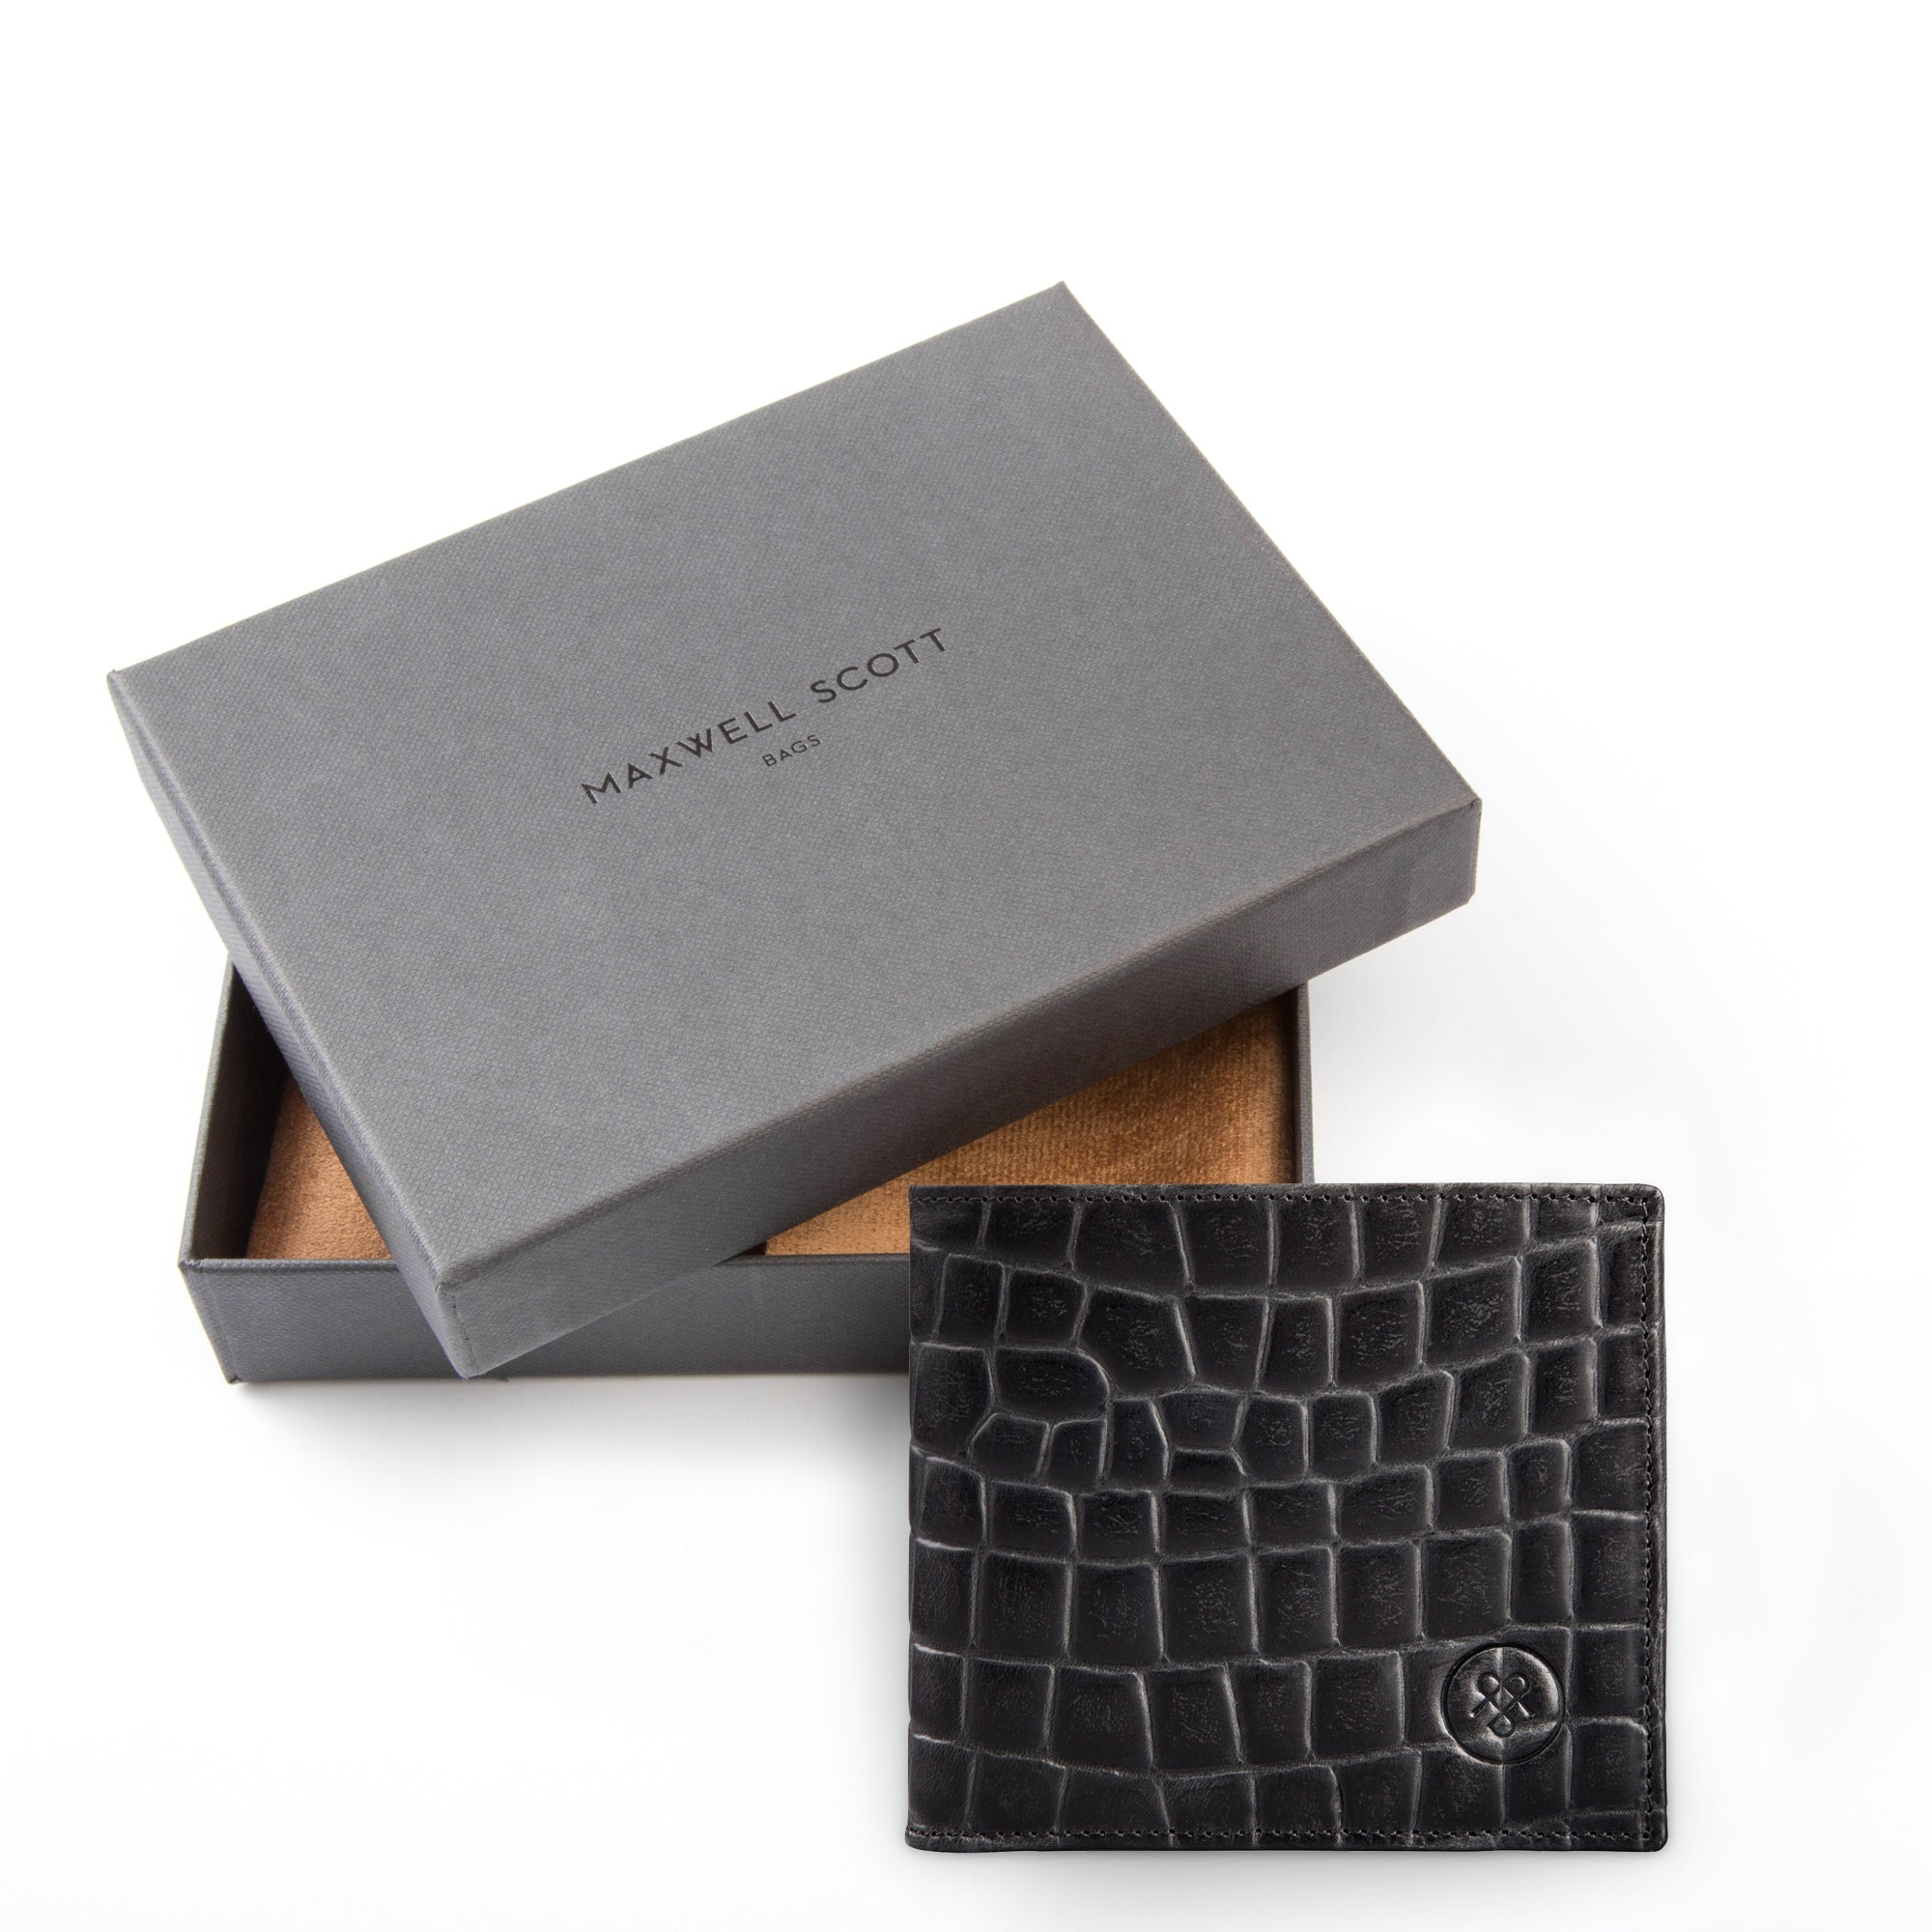 Image 7 of the 'Ticciano' Black Mens Mock Croc Wallet with Coin Pocket